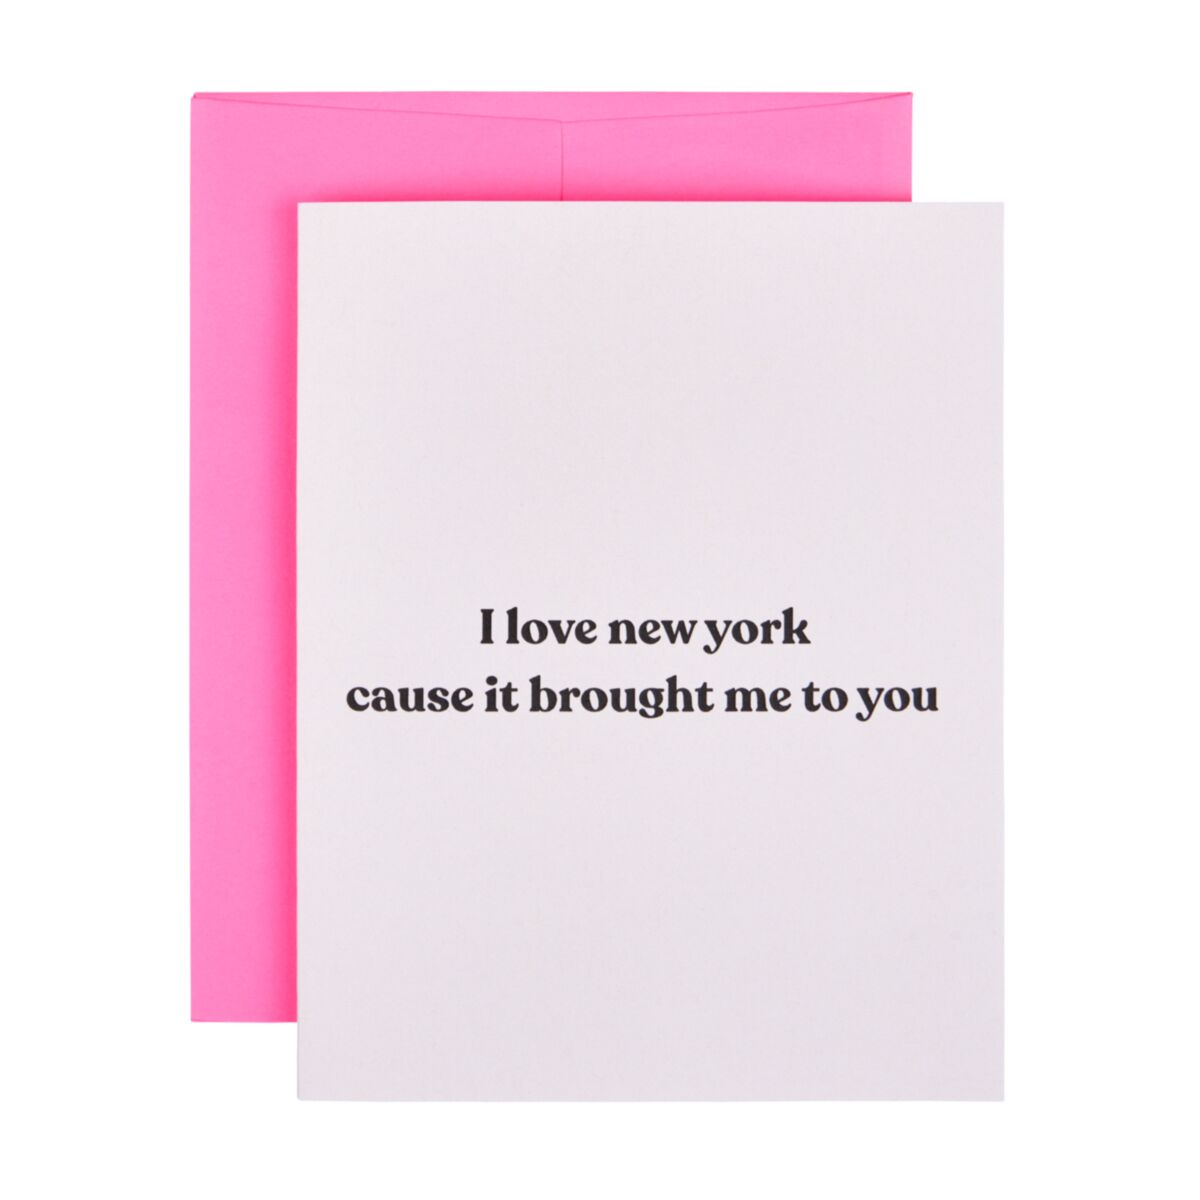 New York Brought Me to You Card image